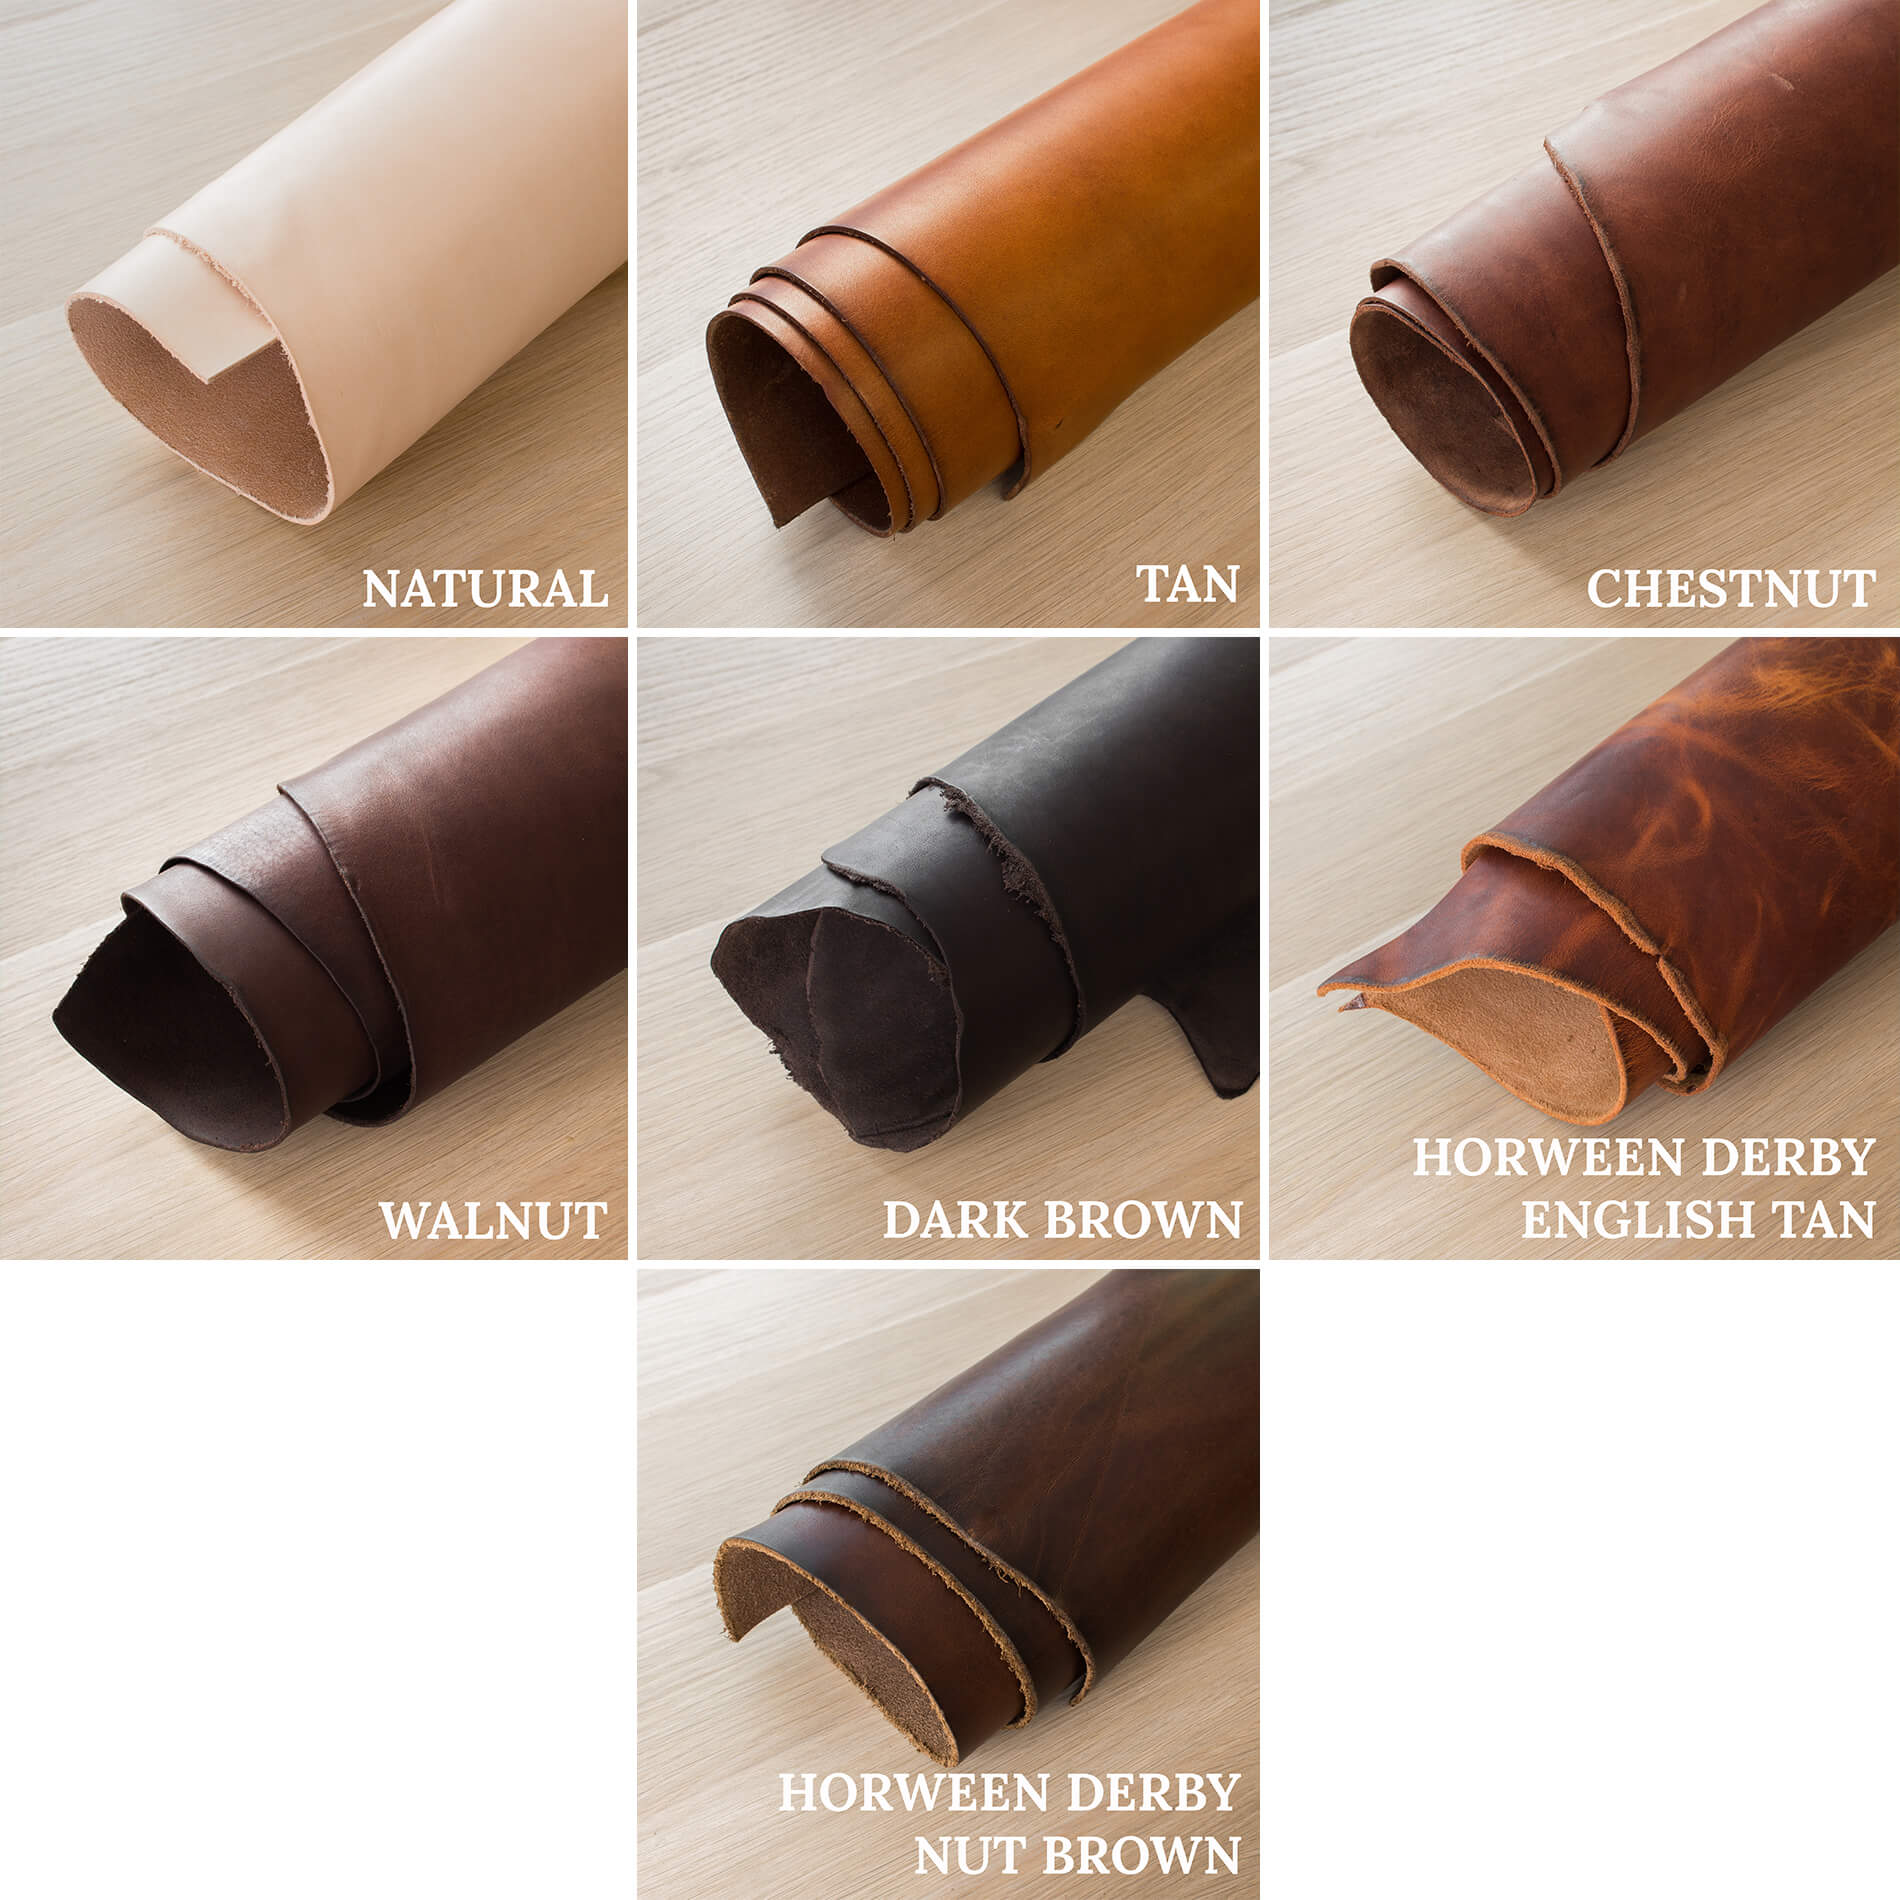 Colville Leather colours choices